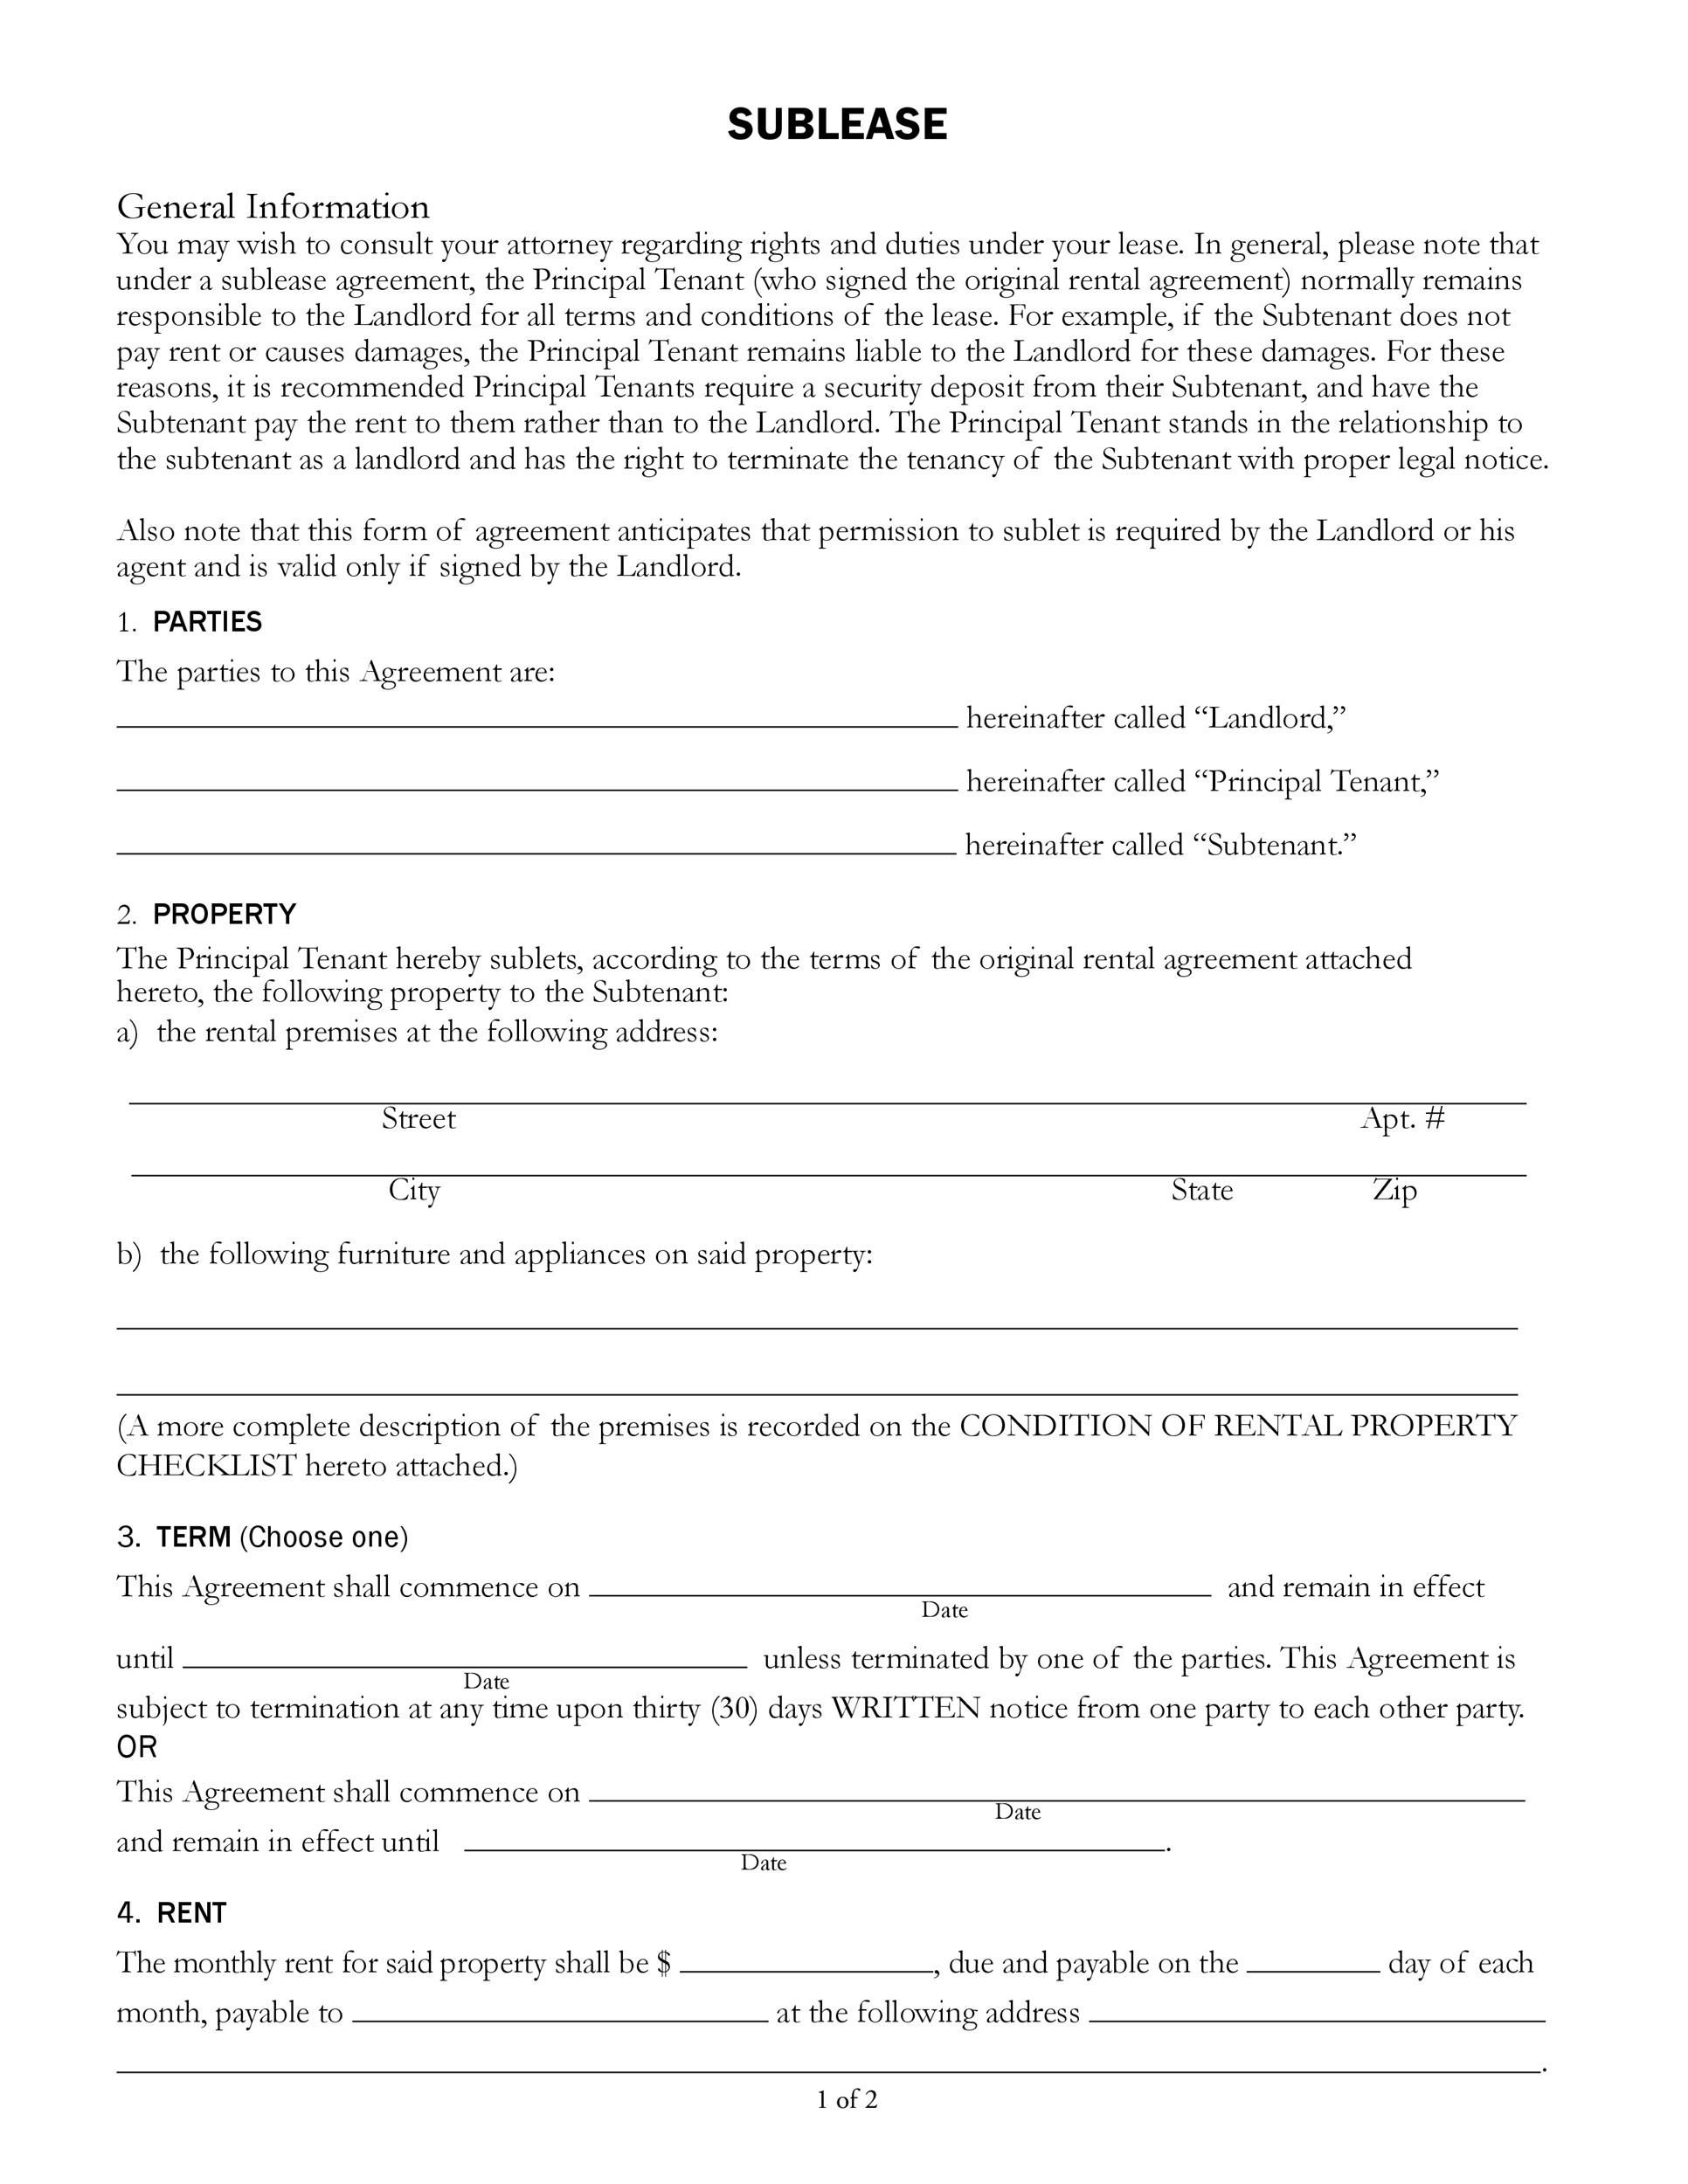 007 Fantastic Free Sublease Agreement Template Sample  Lease Word South AfricaFull